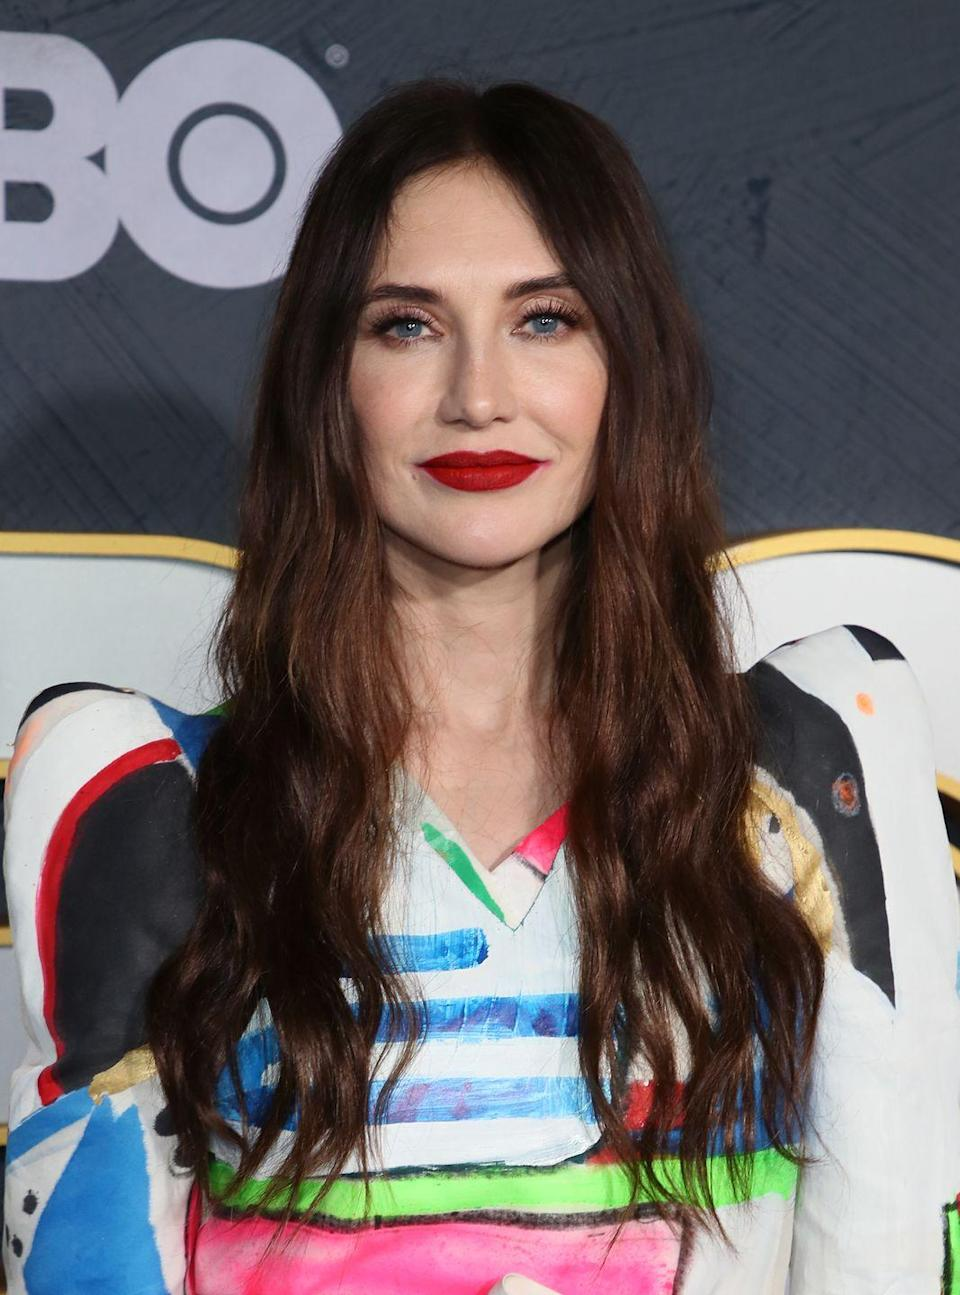 """<p><strong>The role: </strong><a href=""""https://www.bustle.com/p/carice-van-houten-was-asked-to-play-cersei-game-of-thrones-before-being-cast-as-melisandre-18755051"""" rel=""""nofollow noopener"""" target=""""_blank"""" data-ylk=""""slk:Cersei Lannister"""" class=""""link rapid-noclick-resp"""">Cersei Lannister</a> in <em>Game of Thrones</em></p><p><strong>Who *actually* played it:</strong> Lena Headey </p><p><strong>The role they played instead: </strong>Melisandre </p><p>Houton said that she was asked to audition for the part of Cersei, but she couldn't do it because she was shooting something else. She was then offered the role of Melisandre, and said that """"Lena couldn't be a better Cersei.""""<br></p>"""